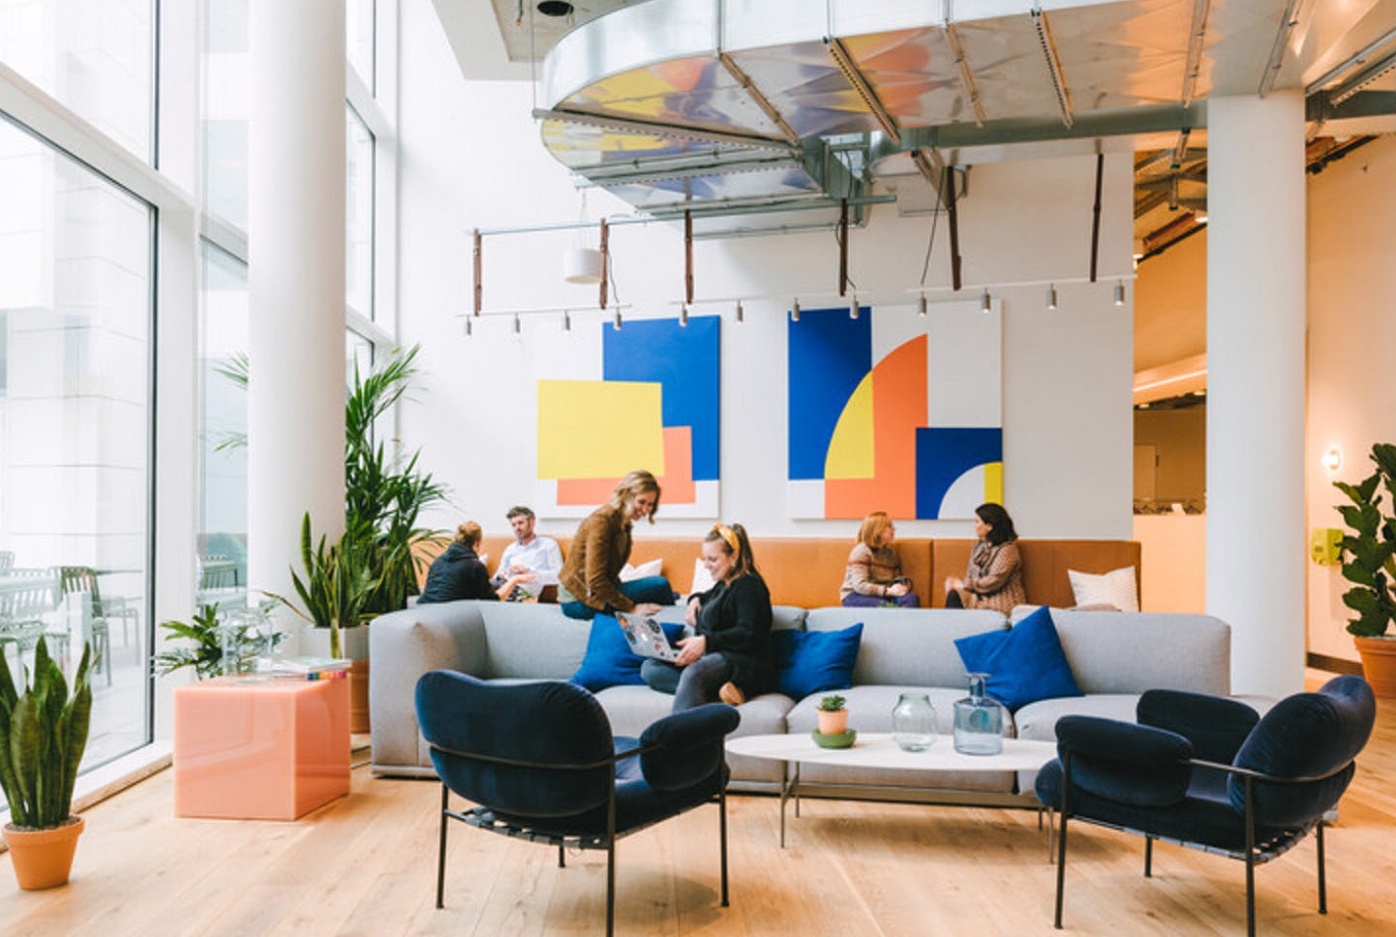 WeWork Announces Partnership with the Cities of Kitchener